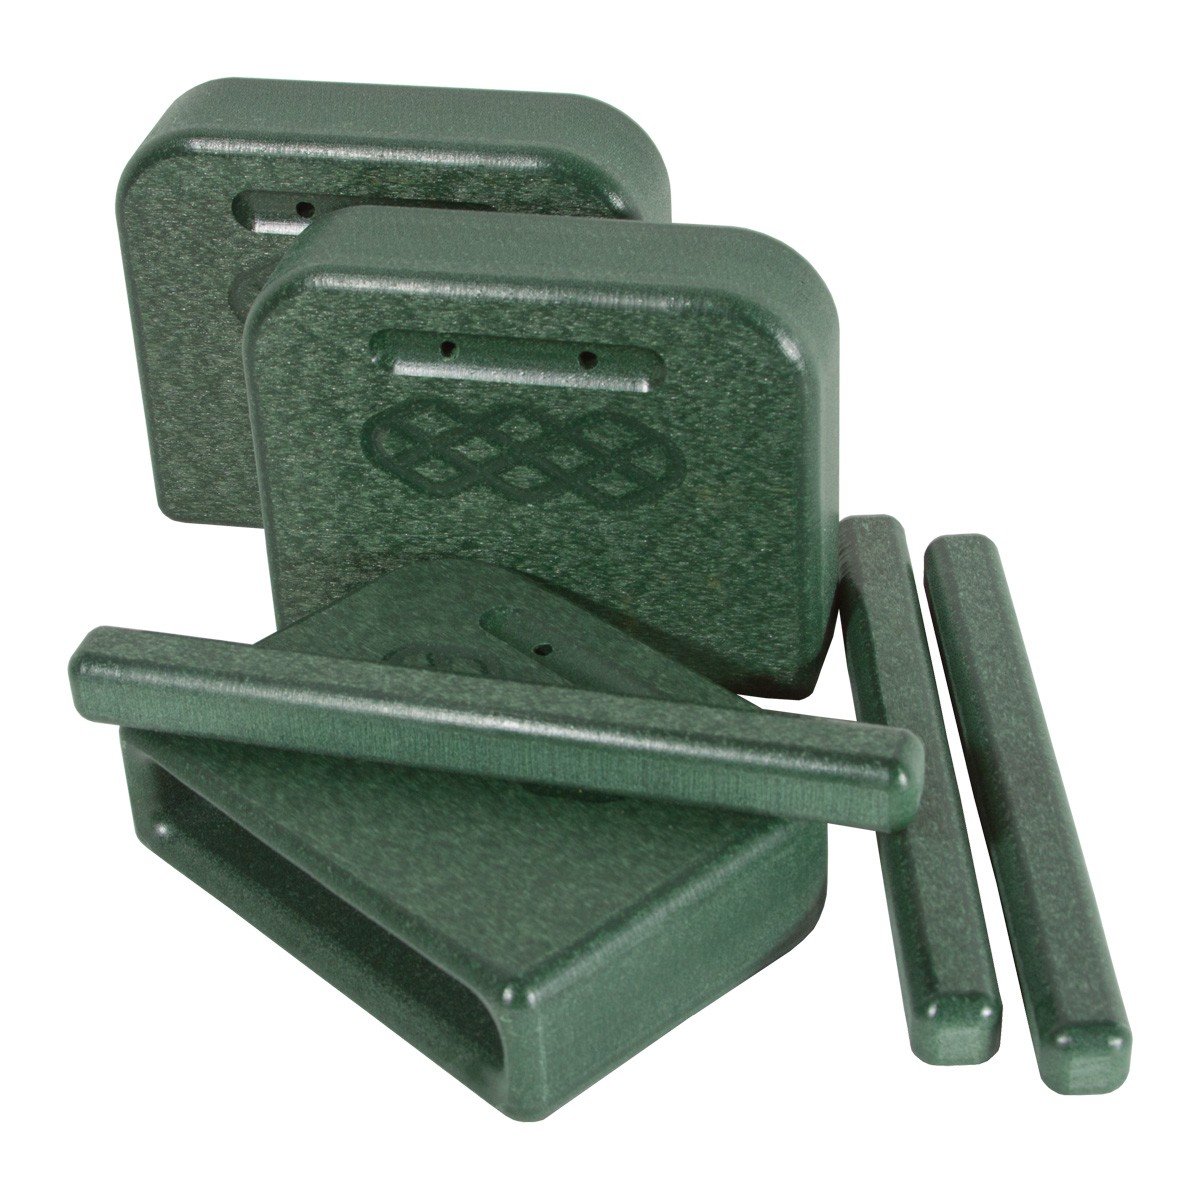 PlayMore Design Eco Tone Blocks with Strikers (Set of 3) - Green